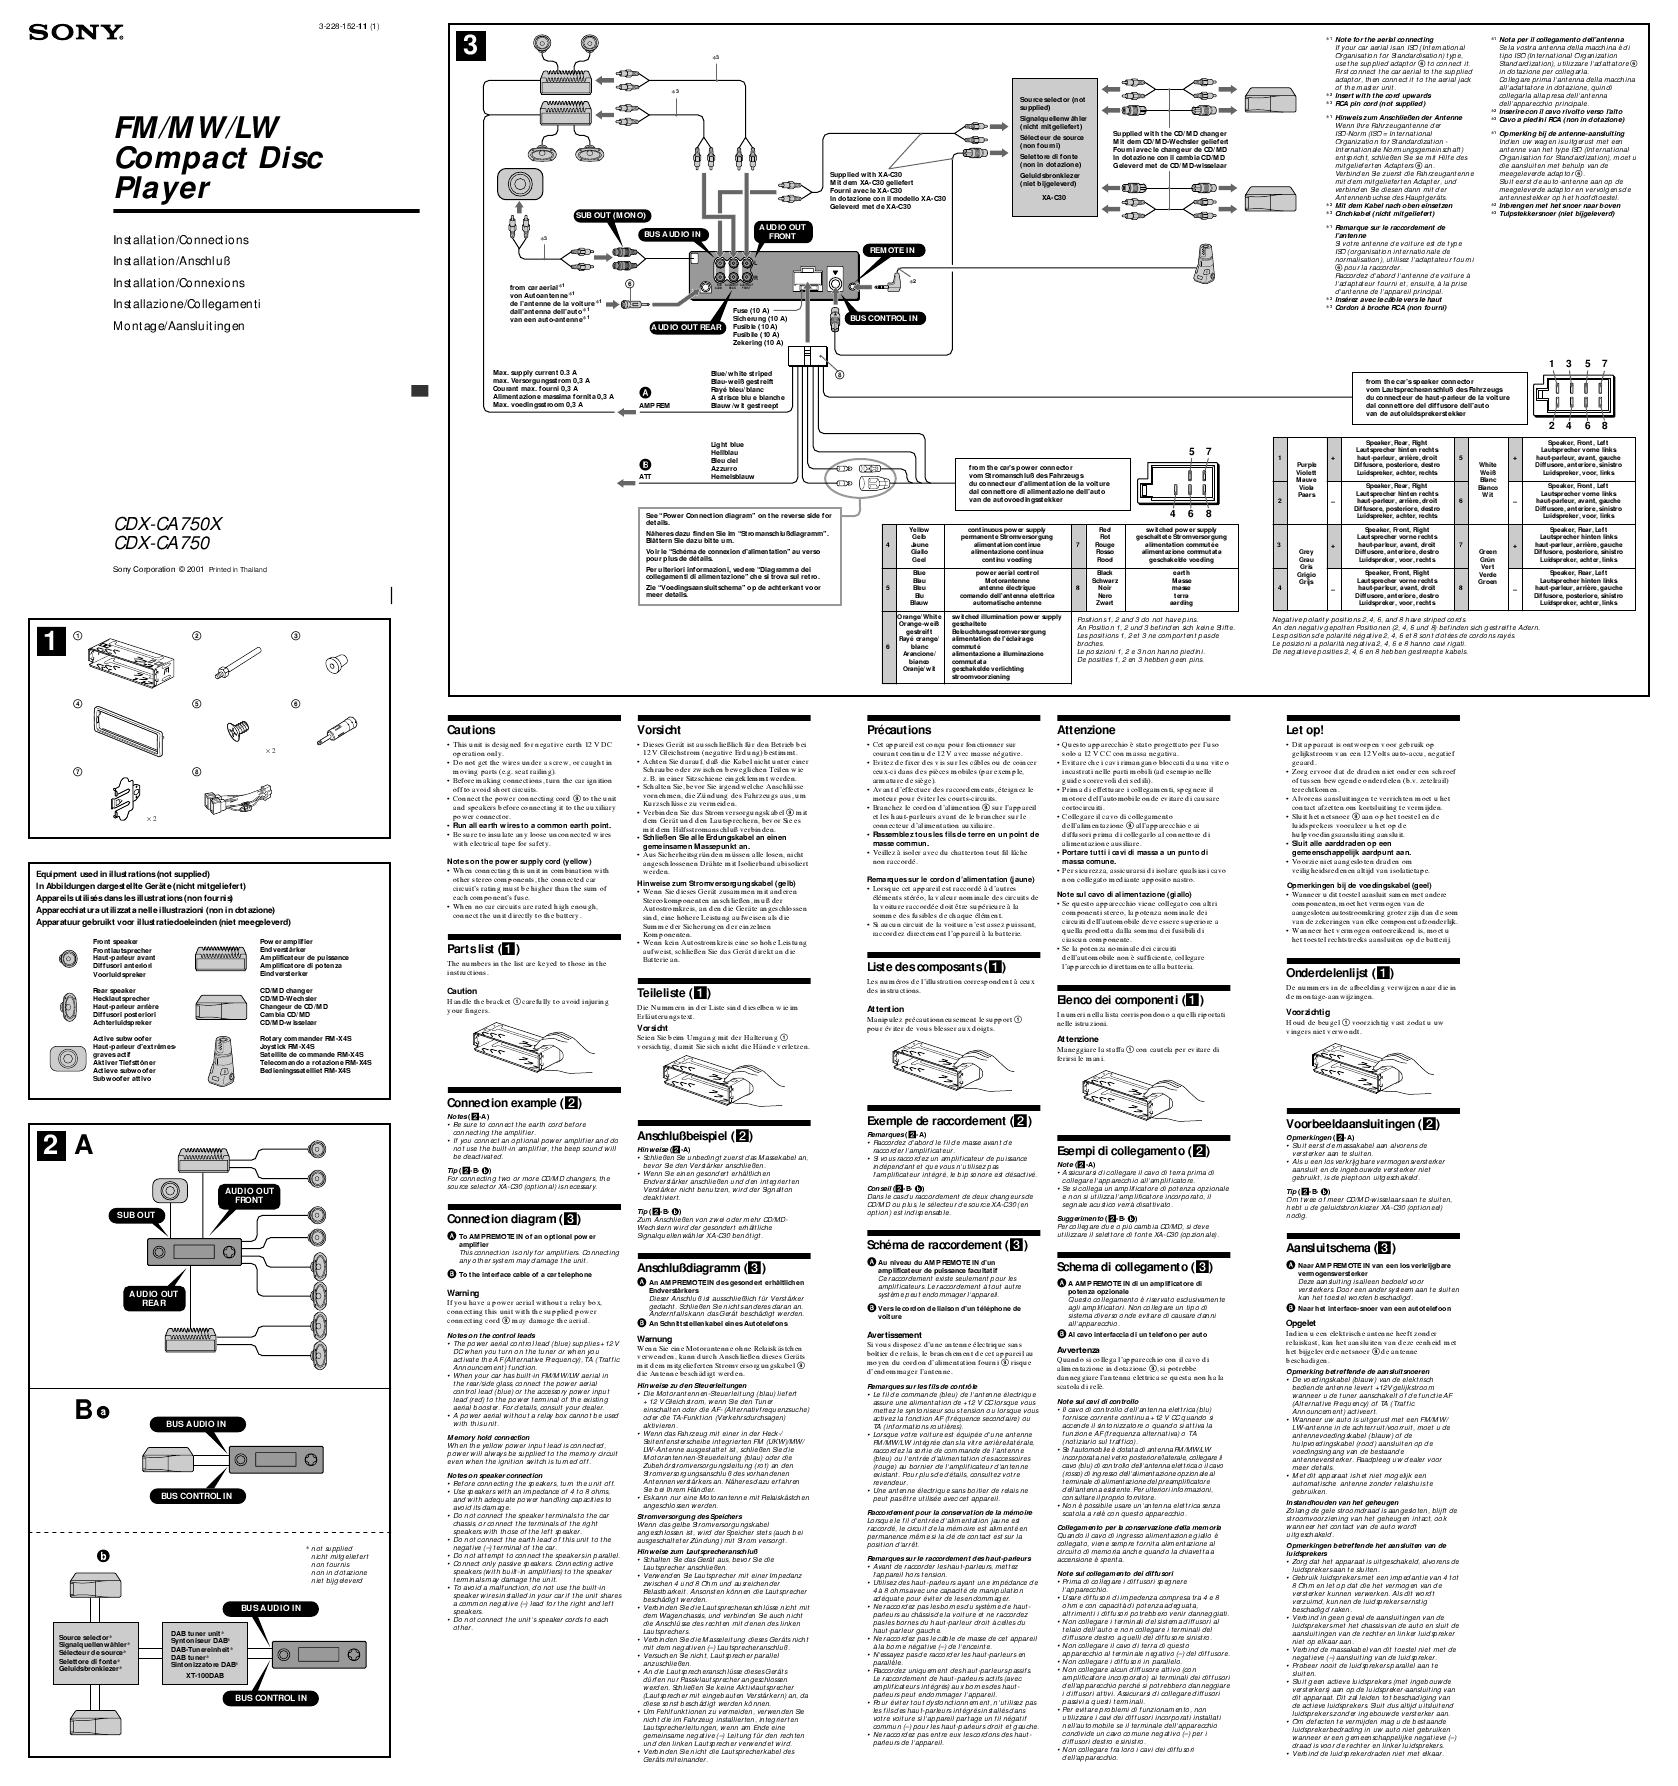 d1c466f3 d12f 49f4 3daf 7b1c7a7ee611 000001 search sony m 470 user manuals manualsonline com sony mex bt3700u wiring diagram at bayanpartner.co